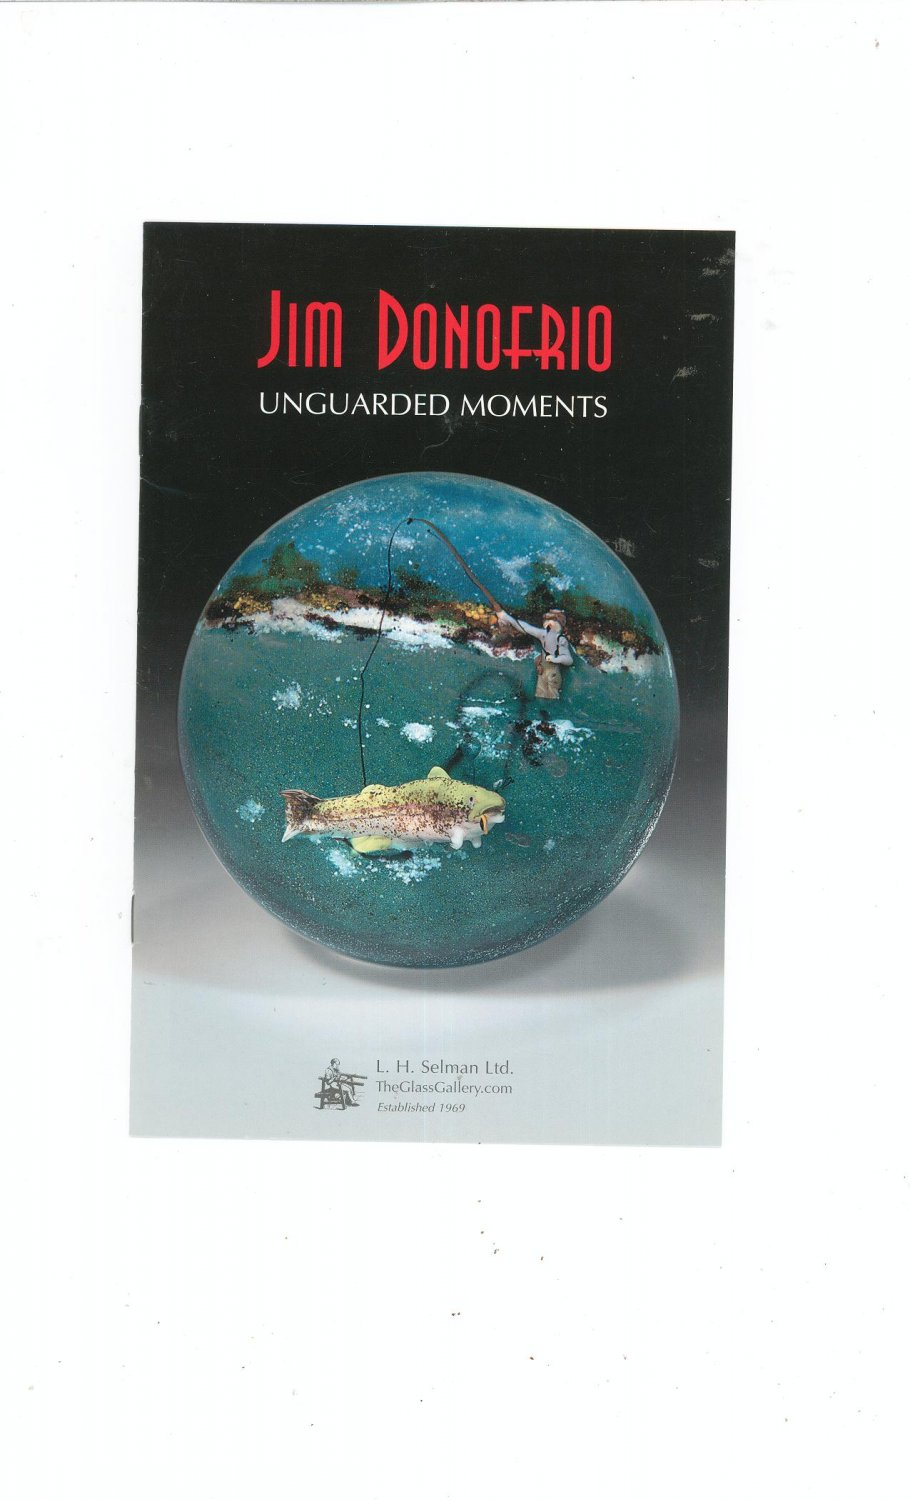 Jim Donofrio Unguarded Moments Catalog / Brochure by L. H. Selman Ltd. Paperweights